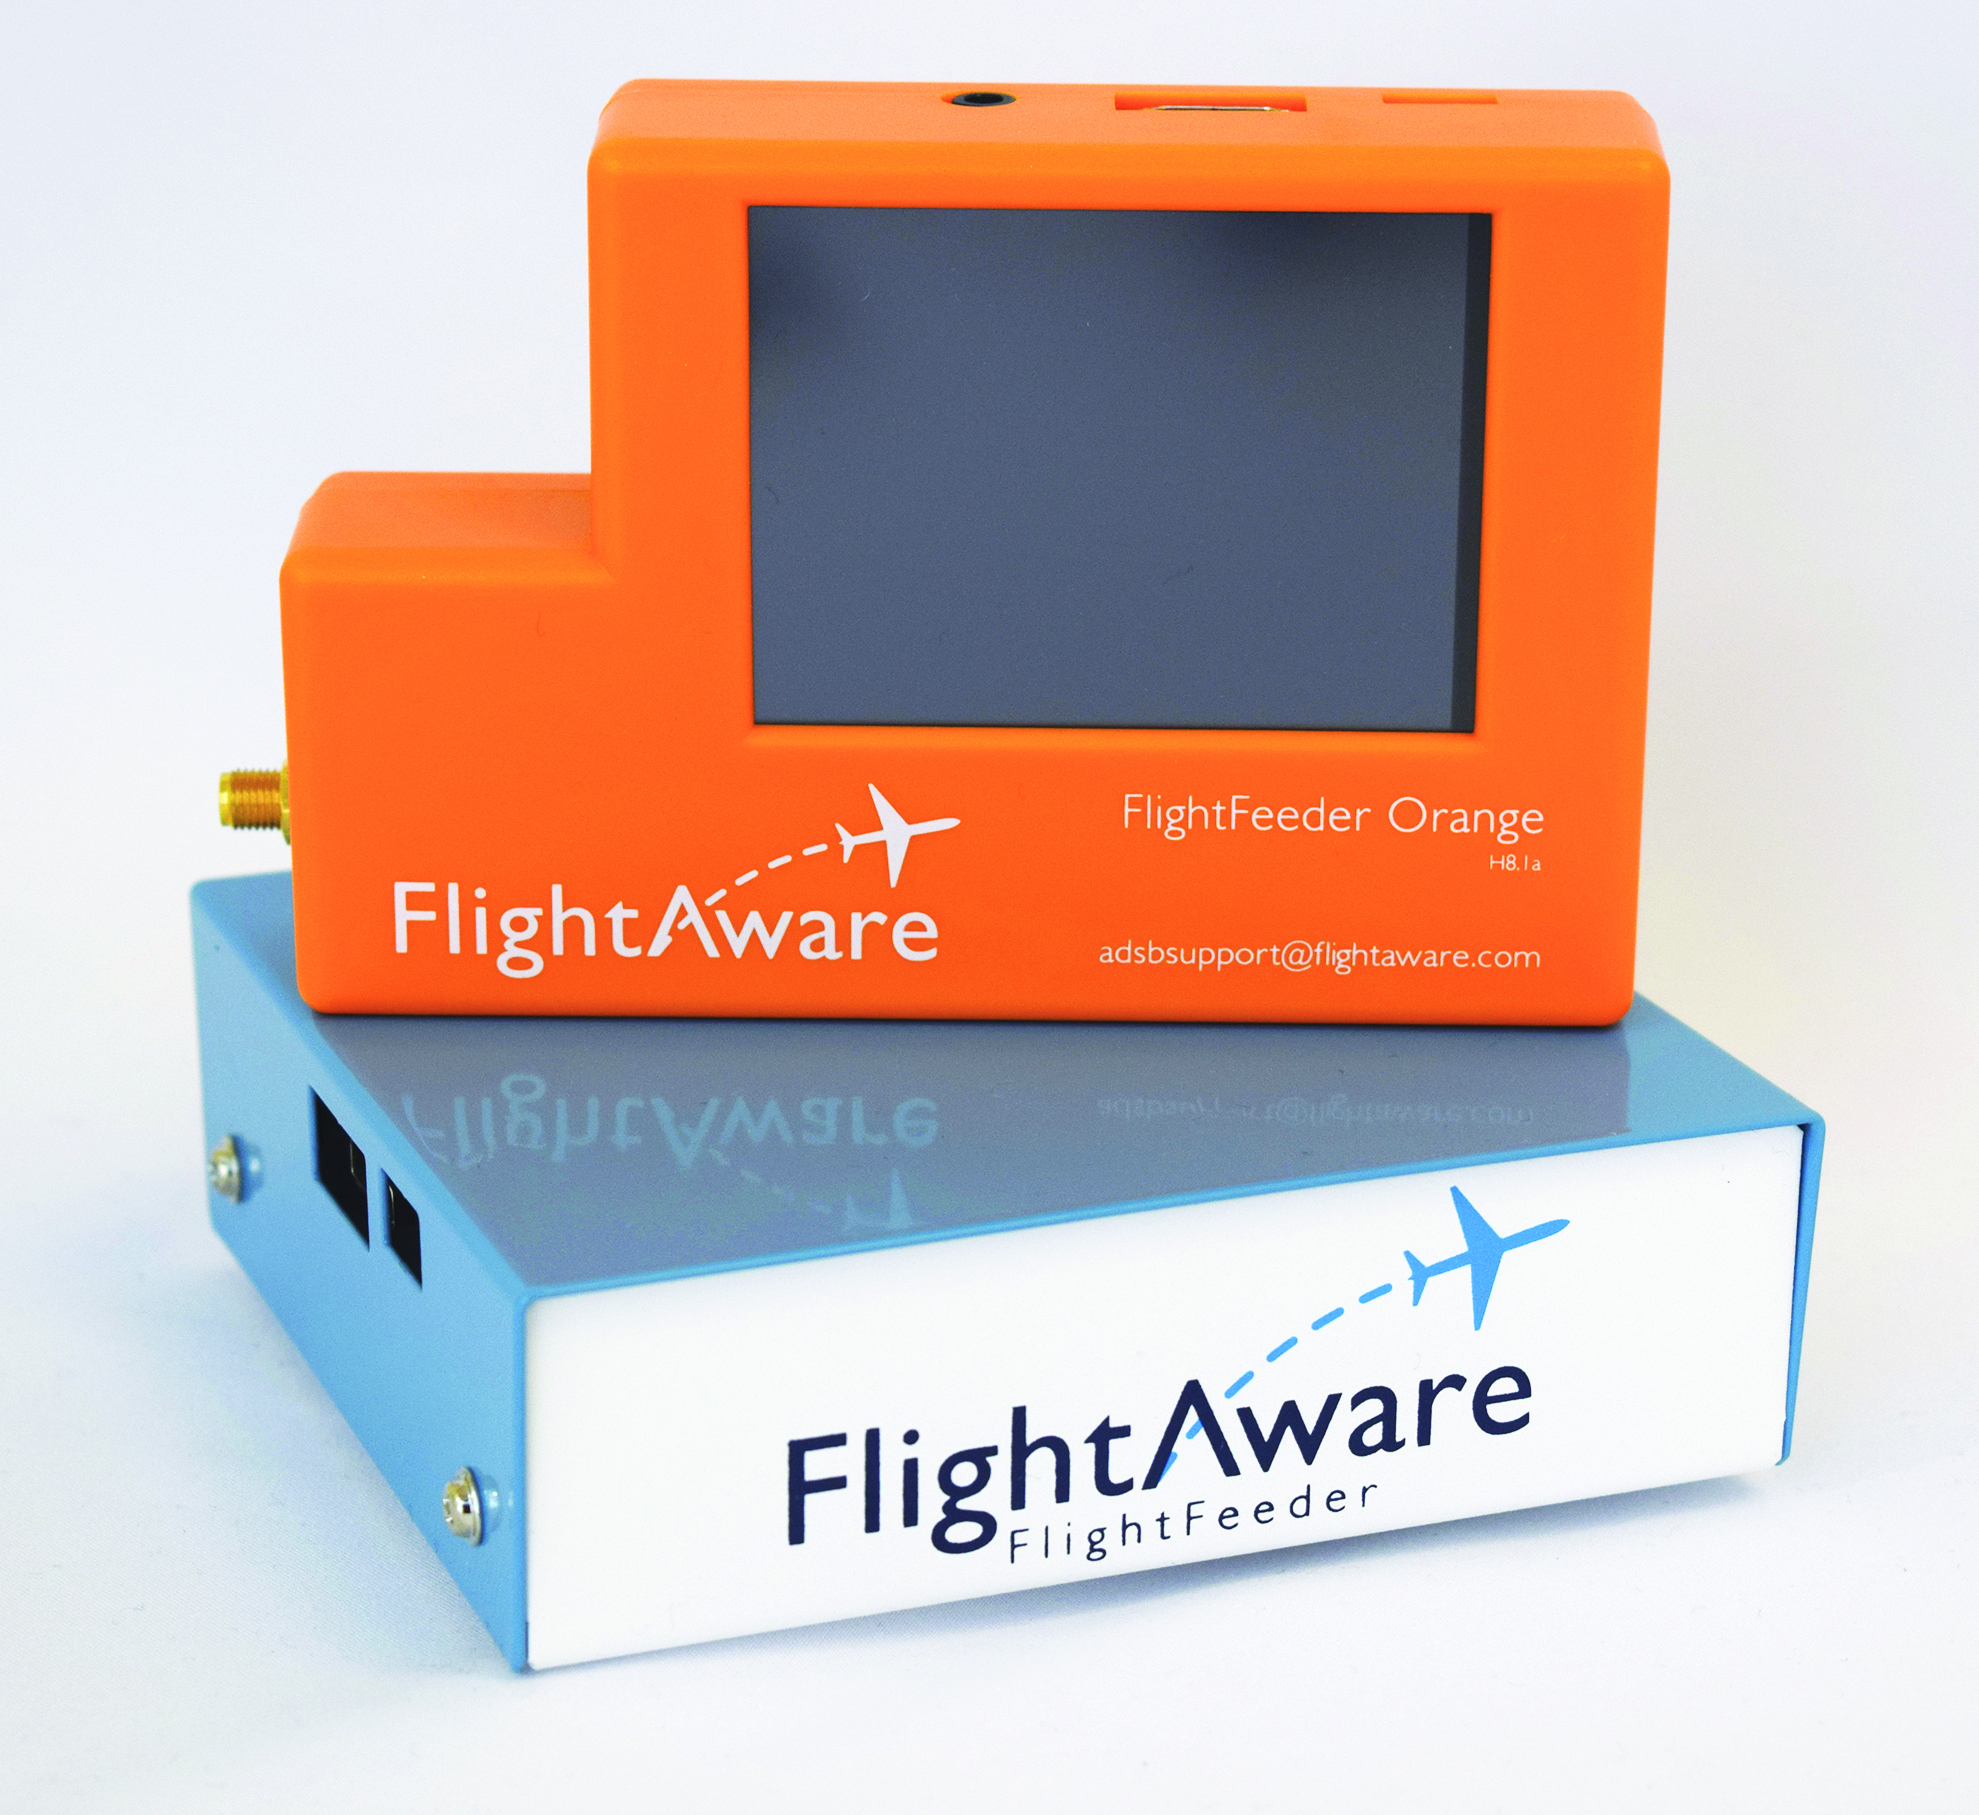 FlightAware Orange and Blue FlightFeeders